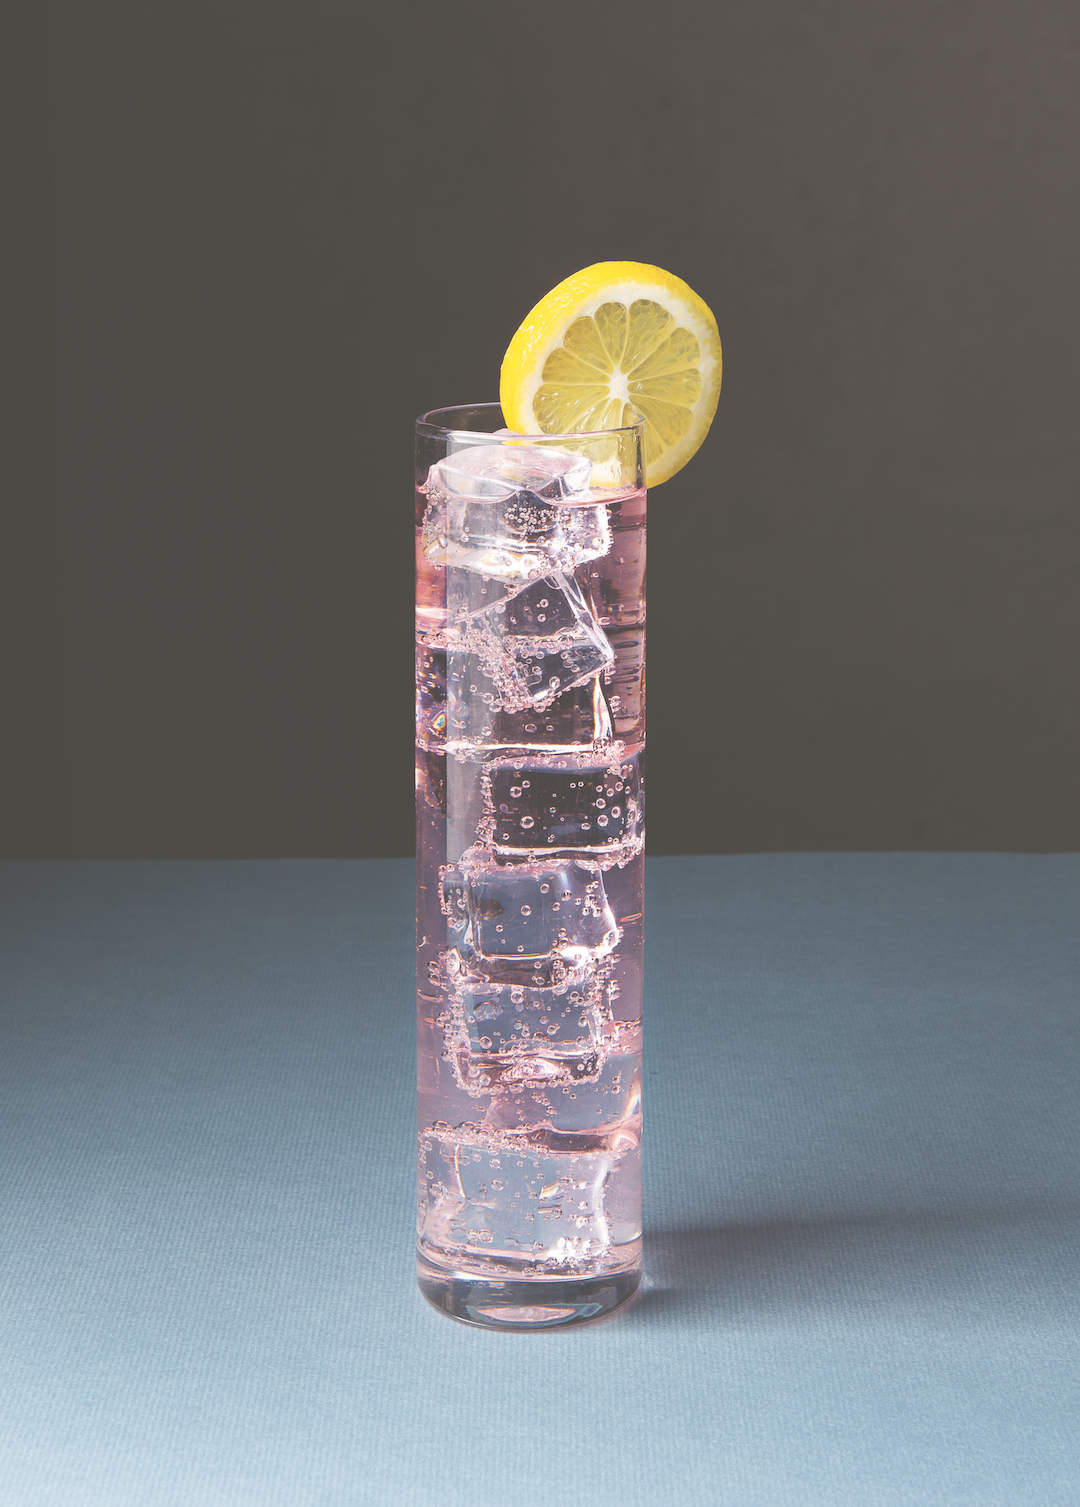 Highball, as featured in Spirited. All photographs by Andy Sewell